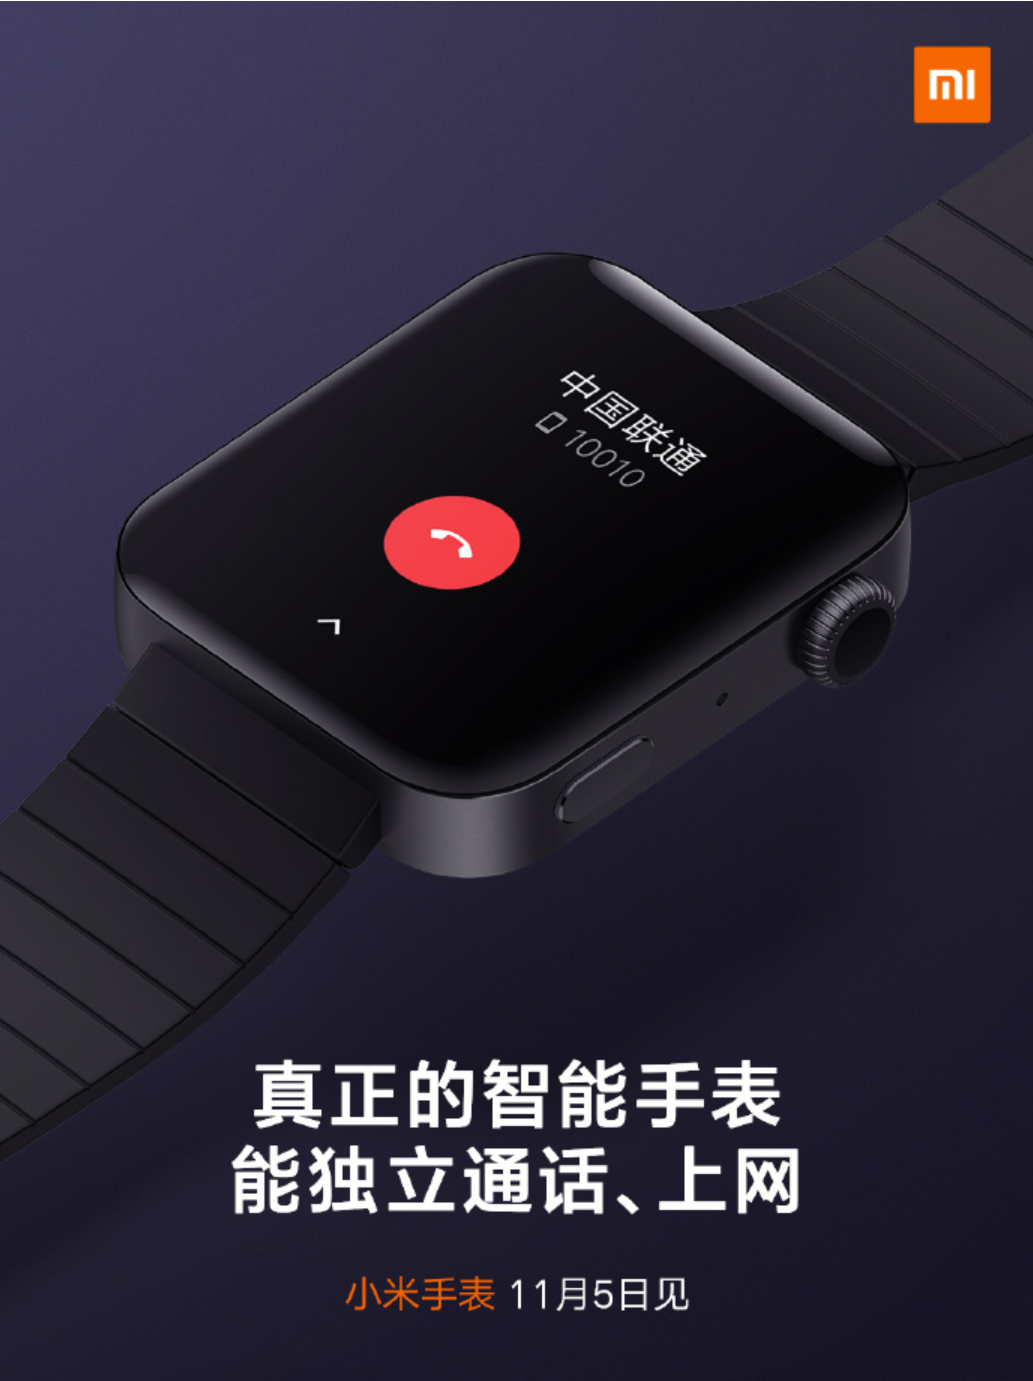 Xiaomi Mi Watch to klon Apple Watcha